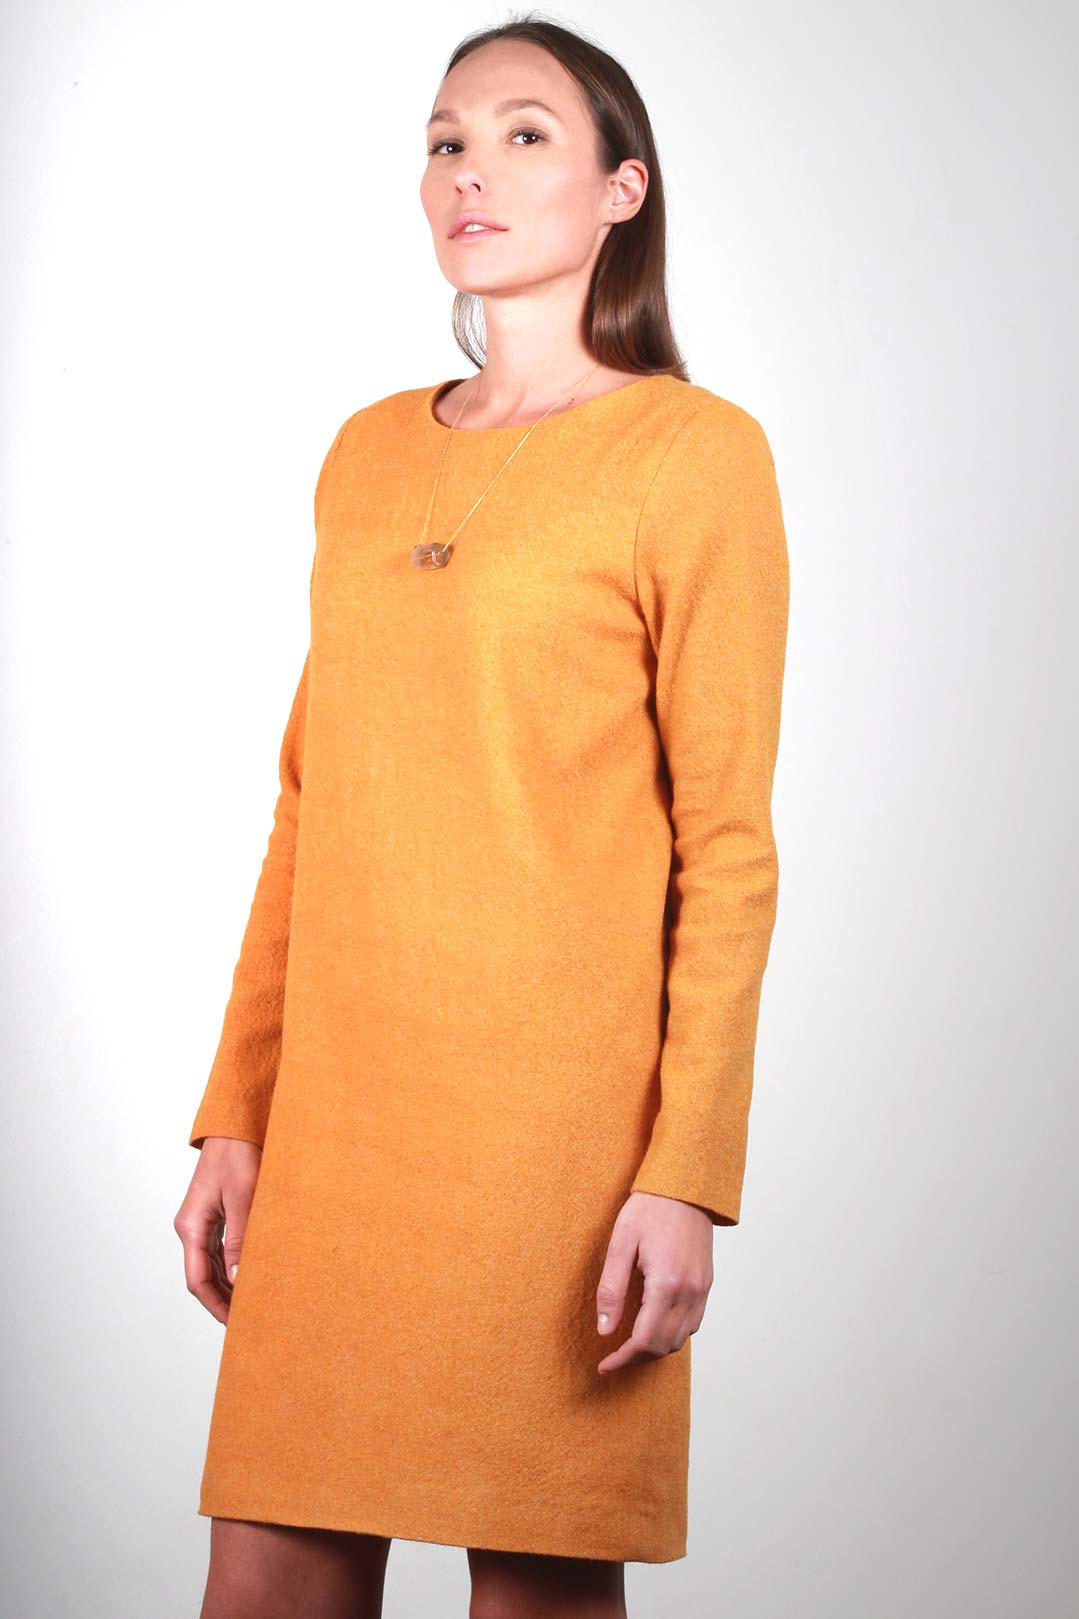 59c6cb0b0552 ATODE - Robe moutarde droite en laine vierge - Made in France